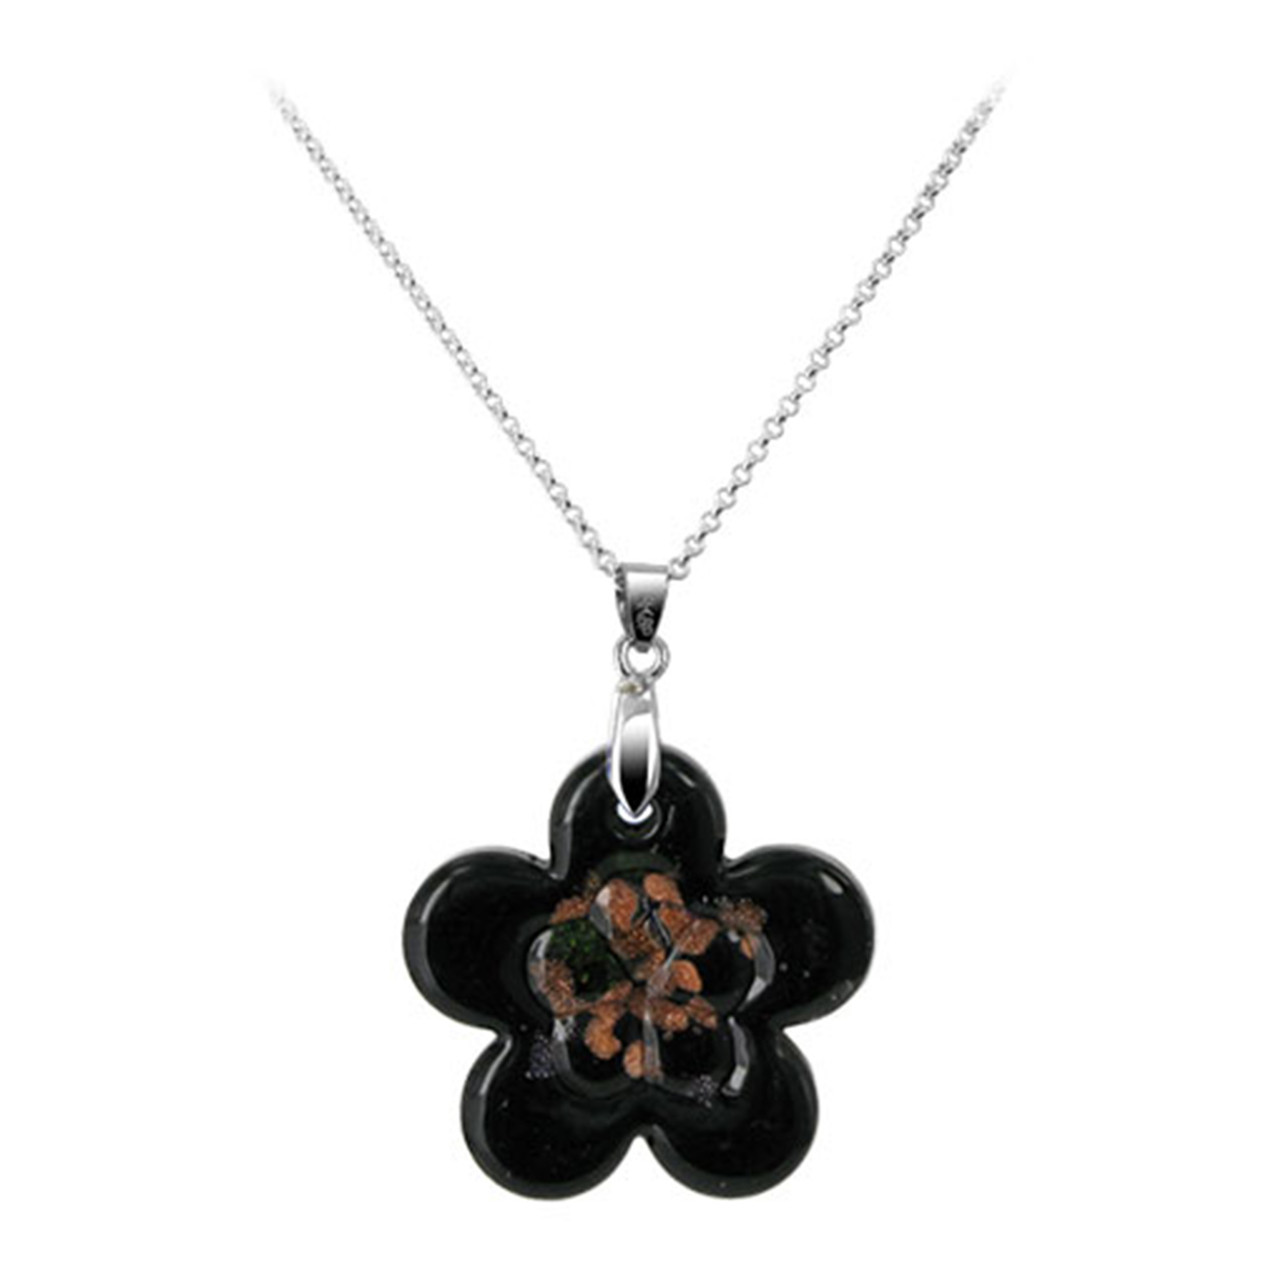 Flower Black Color Thick Glass Stainless Steel Bail Pendant